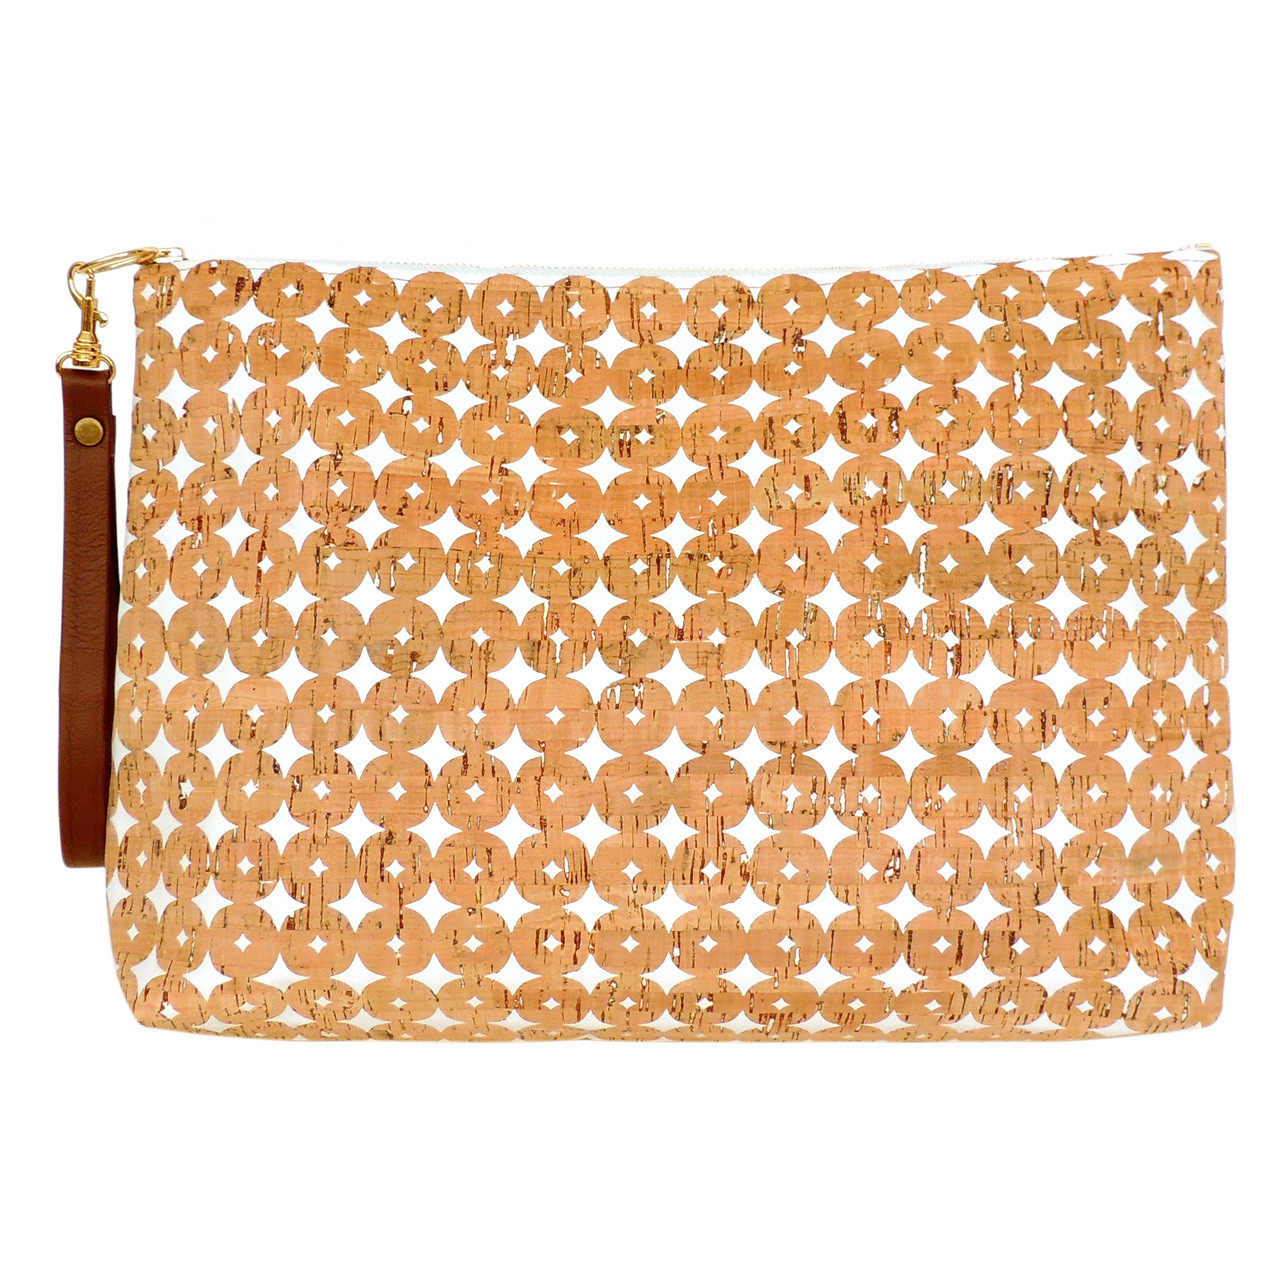 Carryall Clutch in Cork Dots- with Wrist Strap